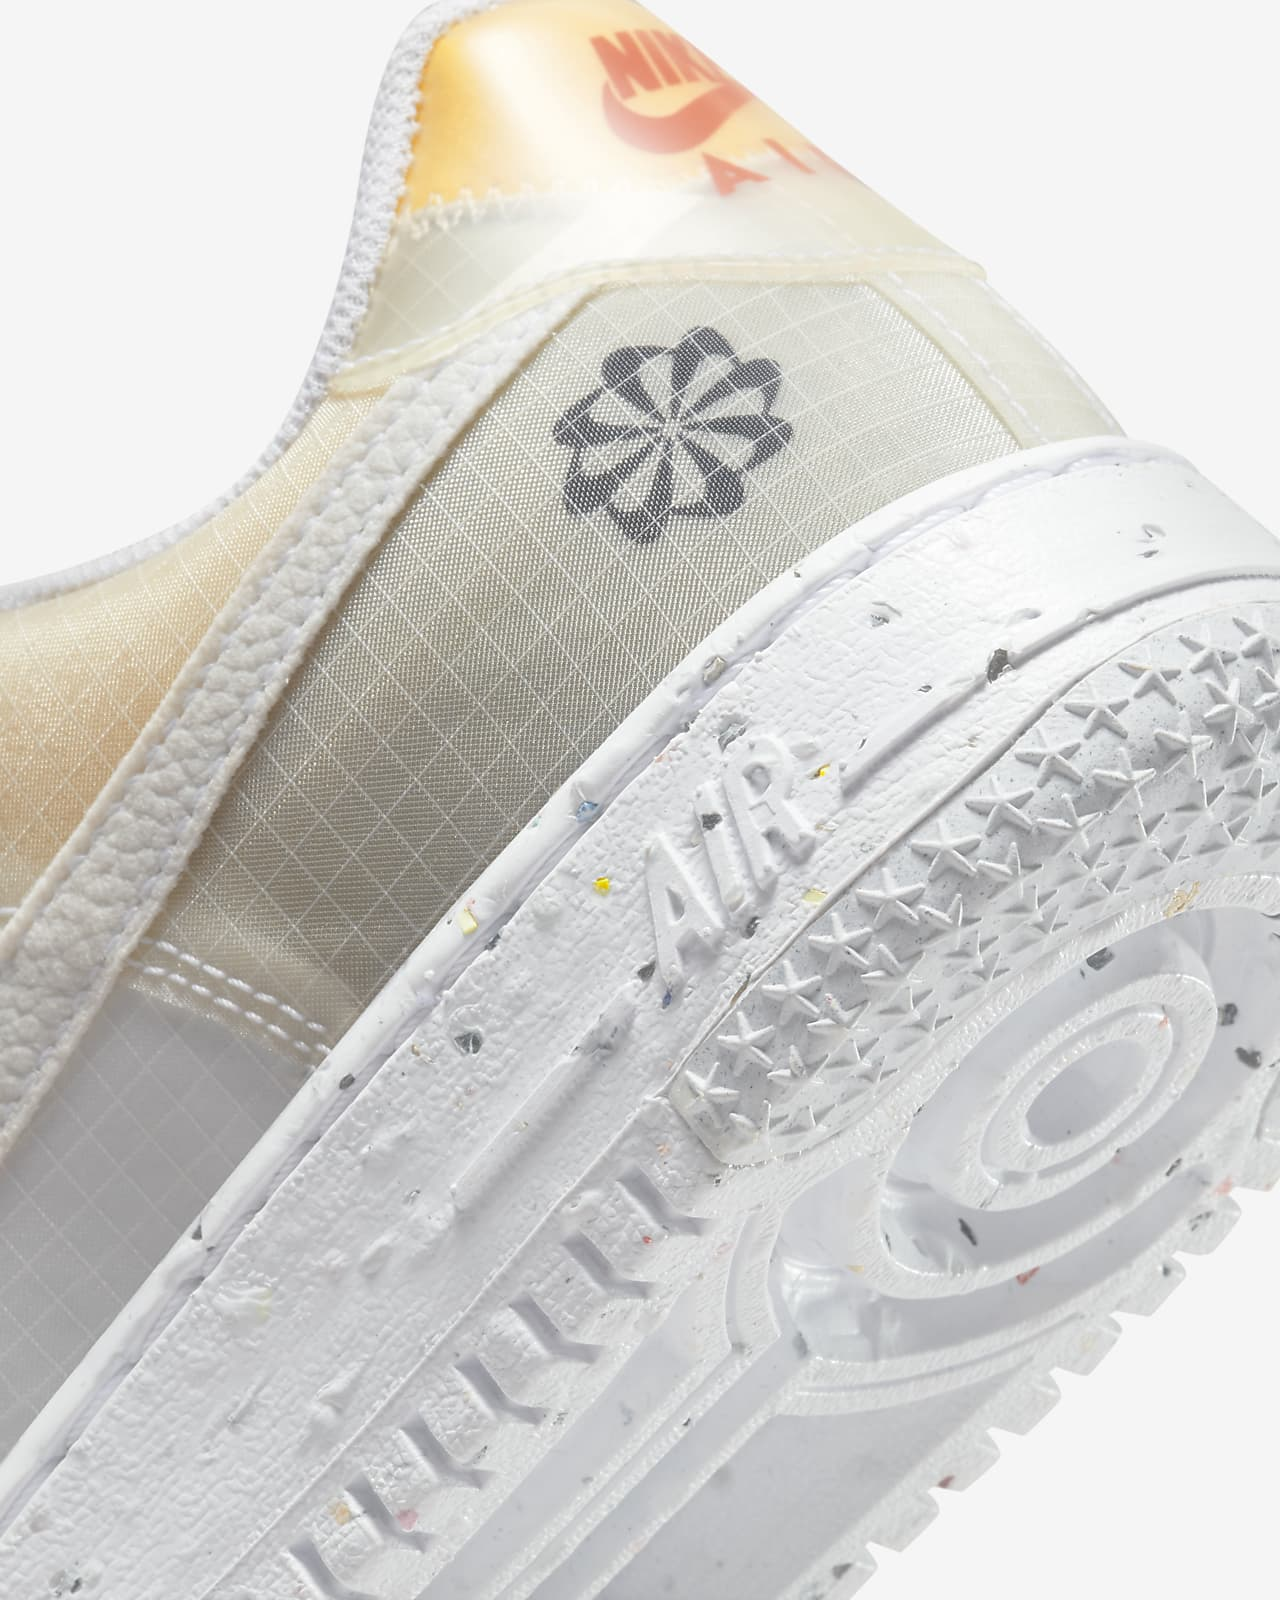 Chaussure Nike Air Force 1 Crater pour Femme. Nike LU